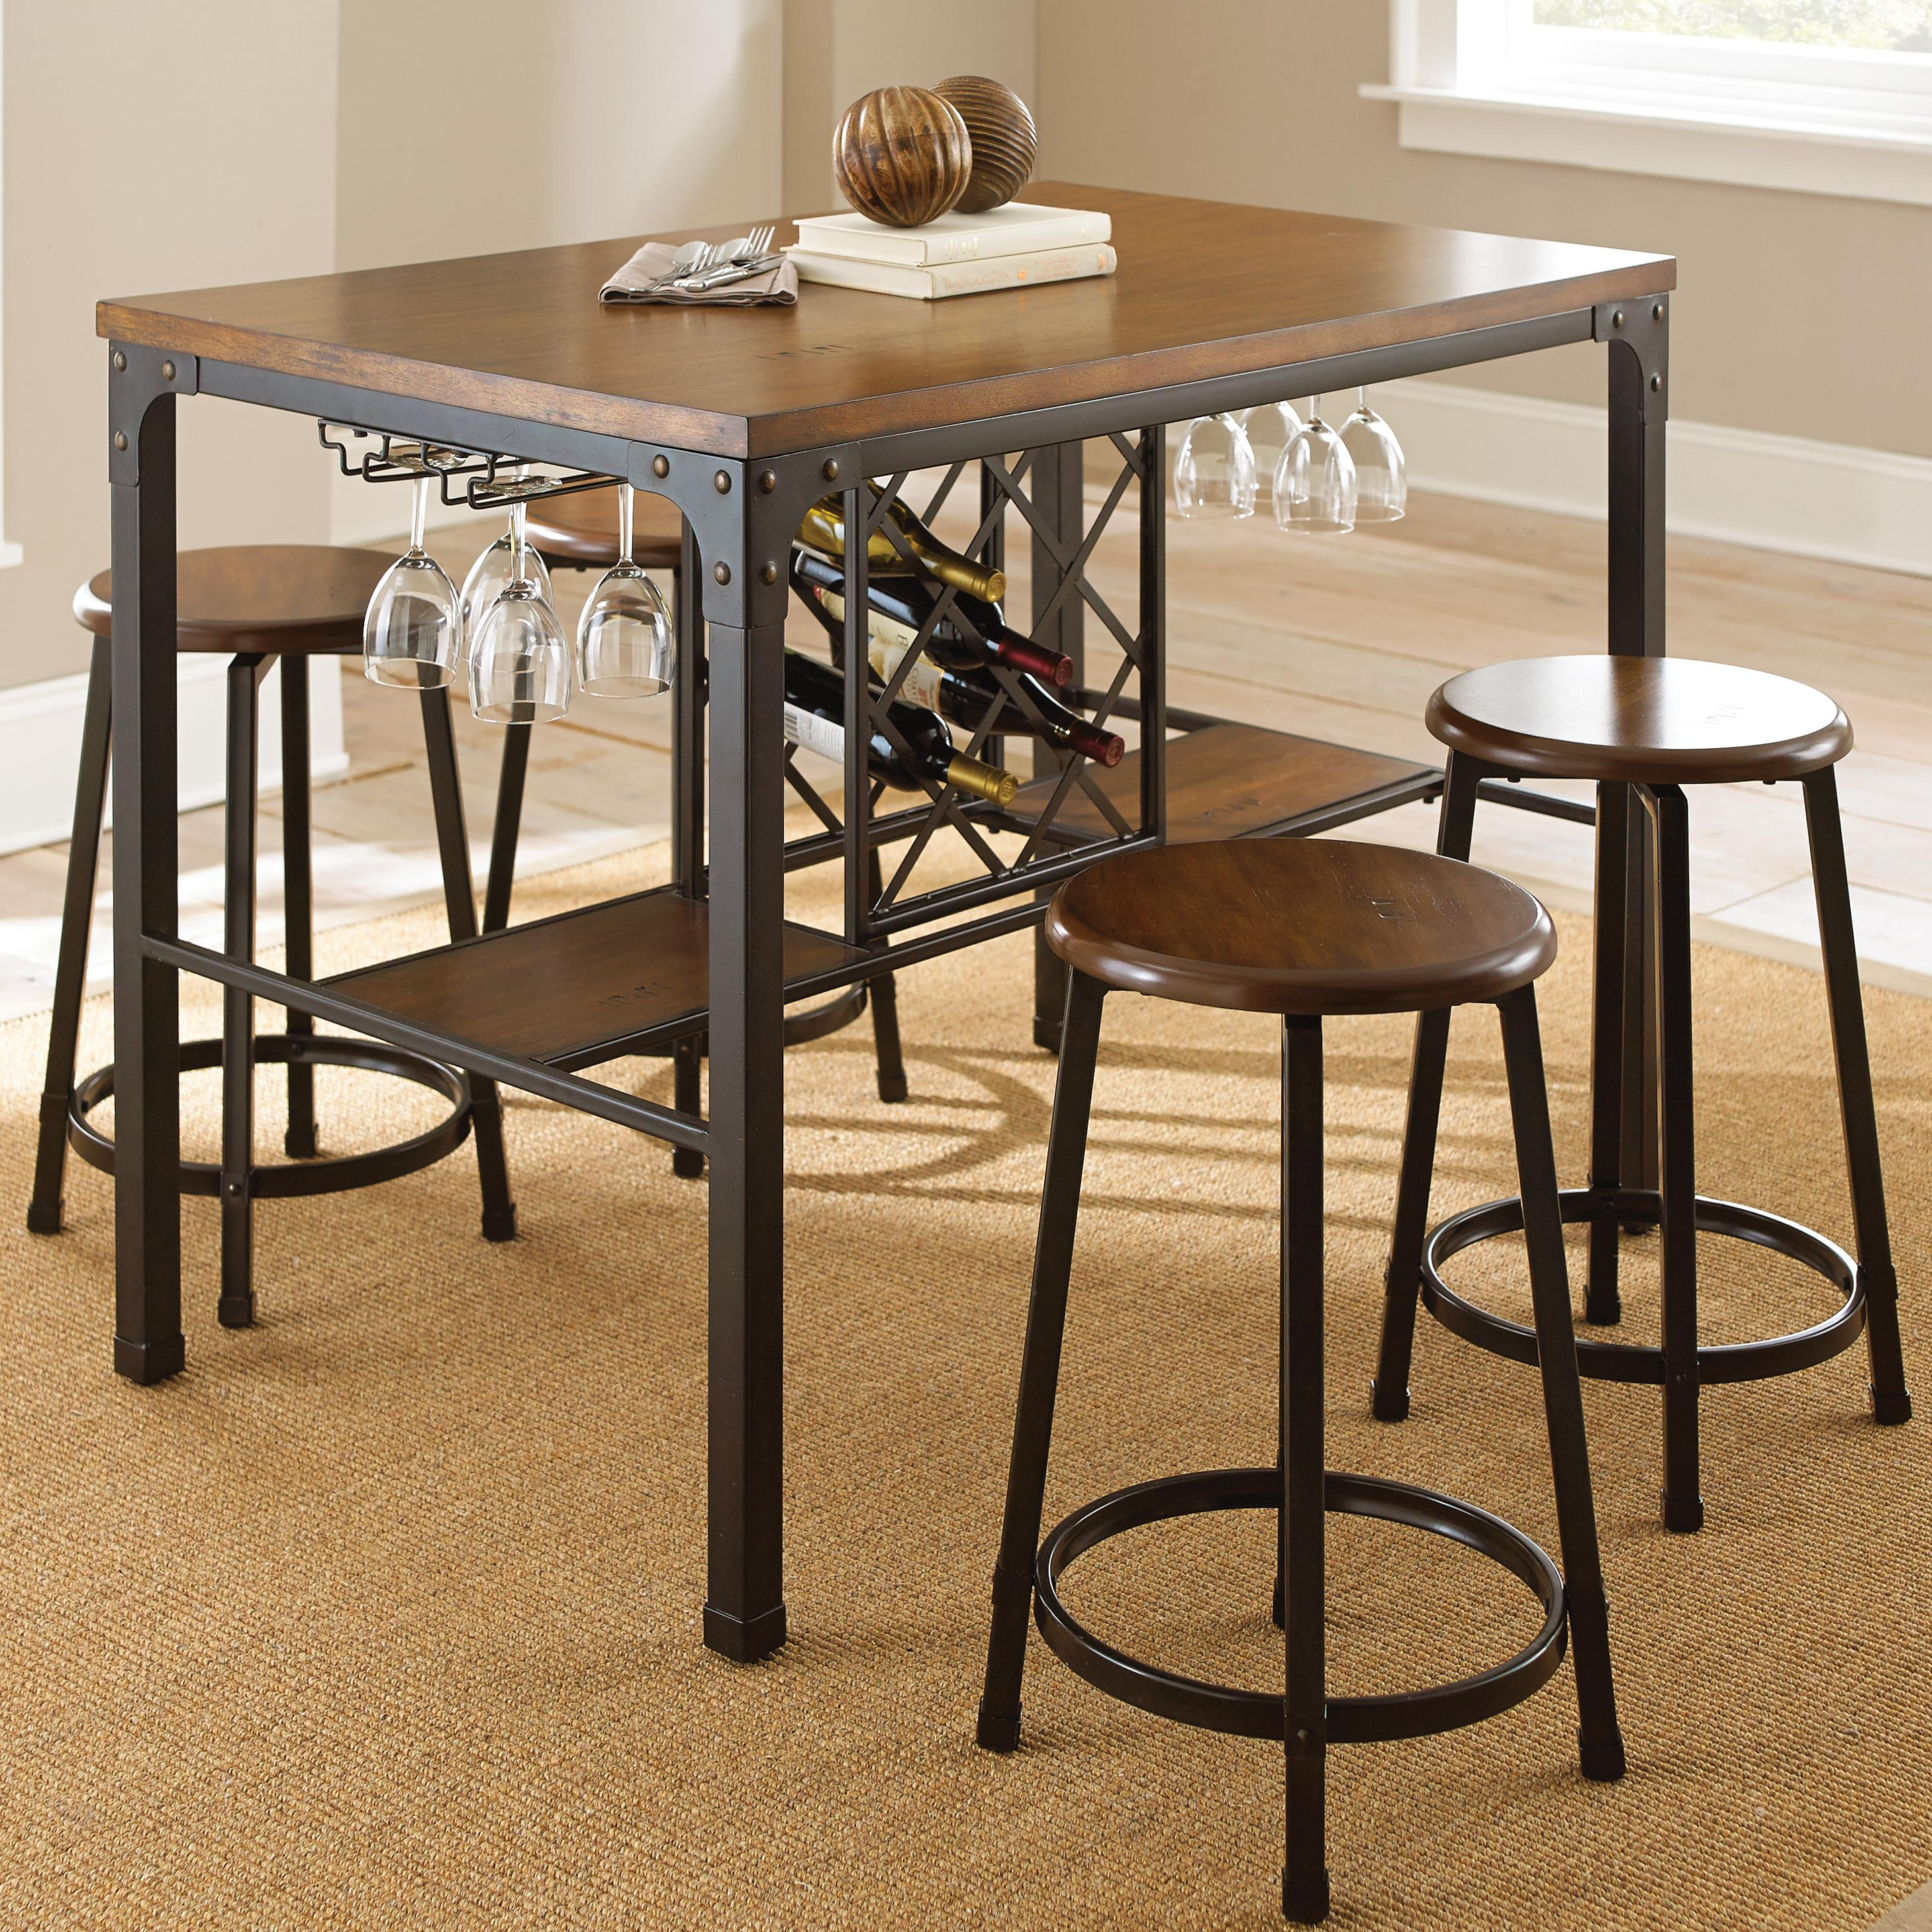 Rebecca 5 Piece Counter Table Set by Steve Silver at Northeast Factory Direct